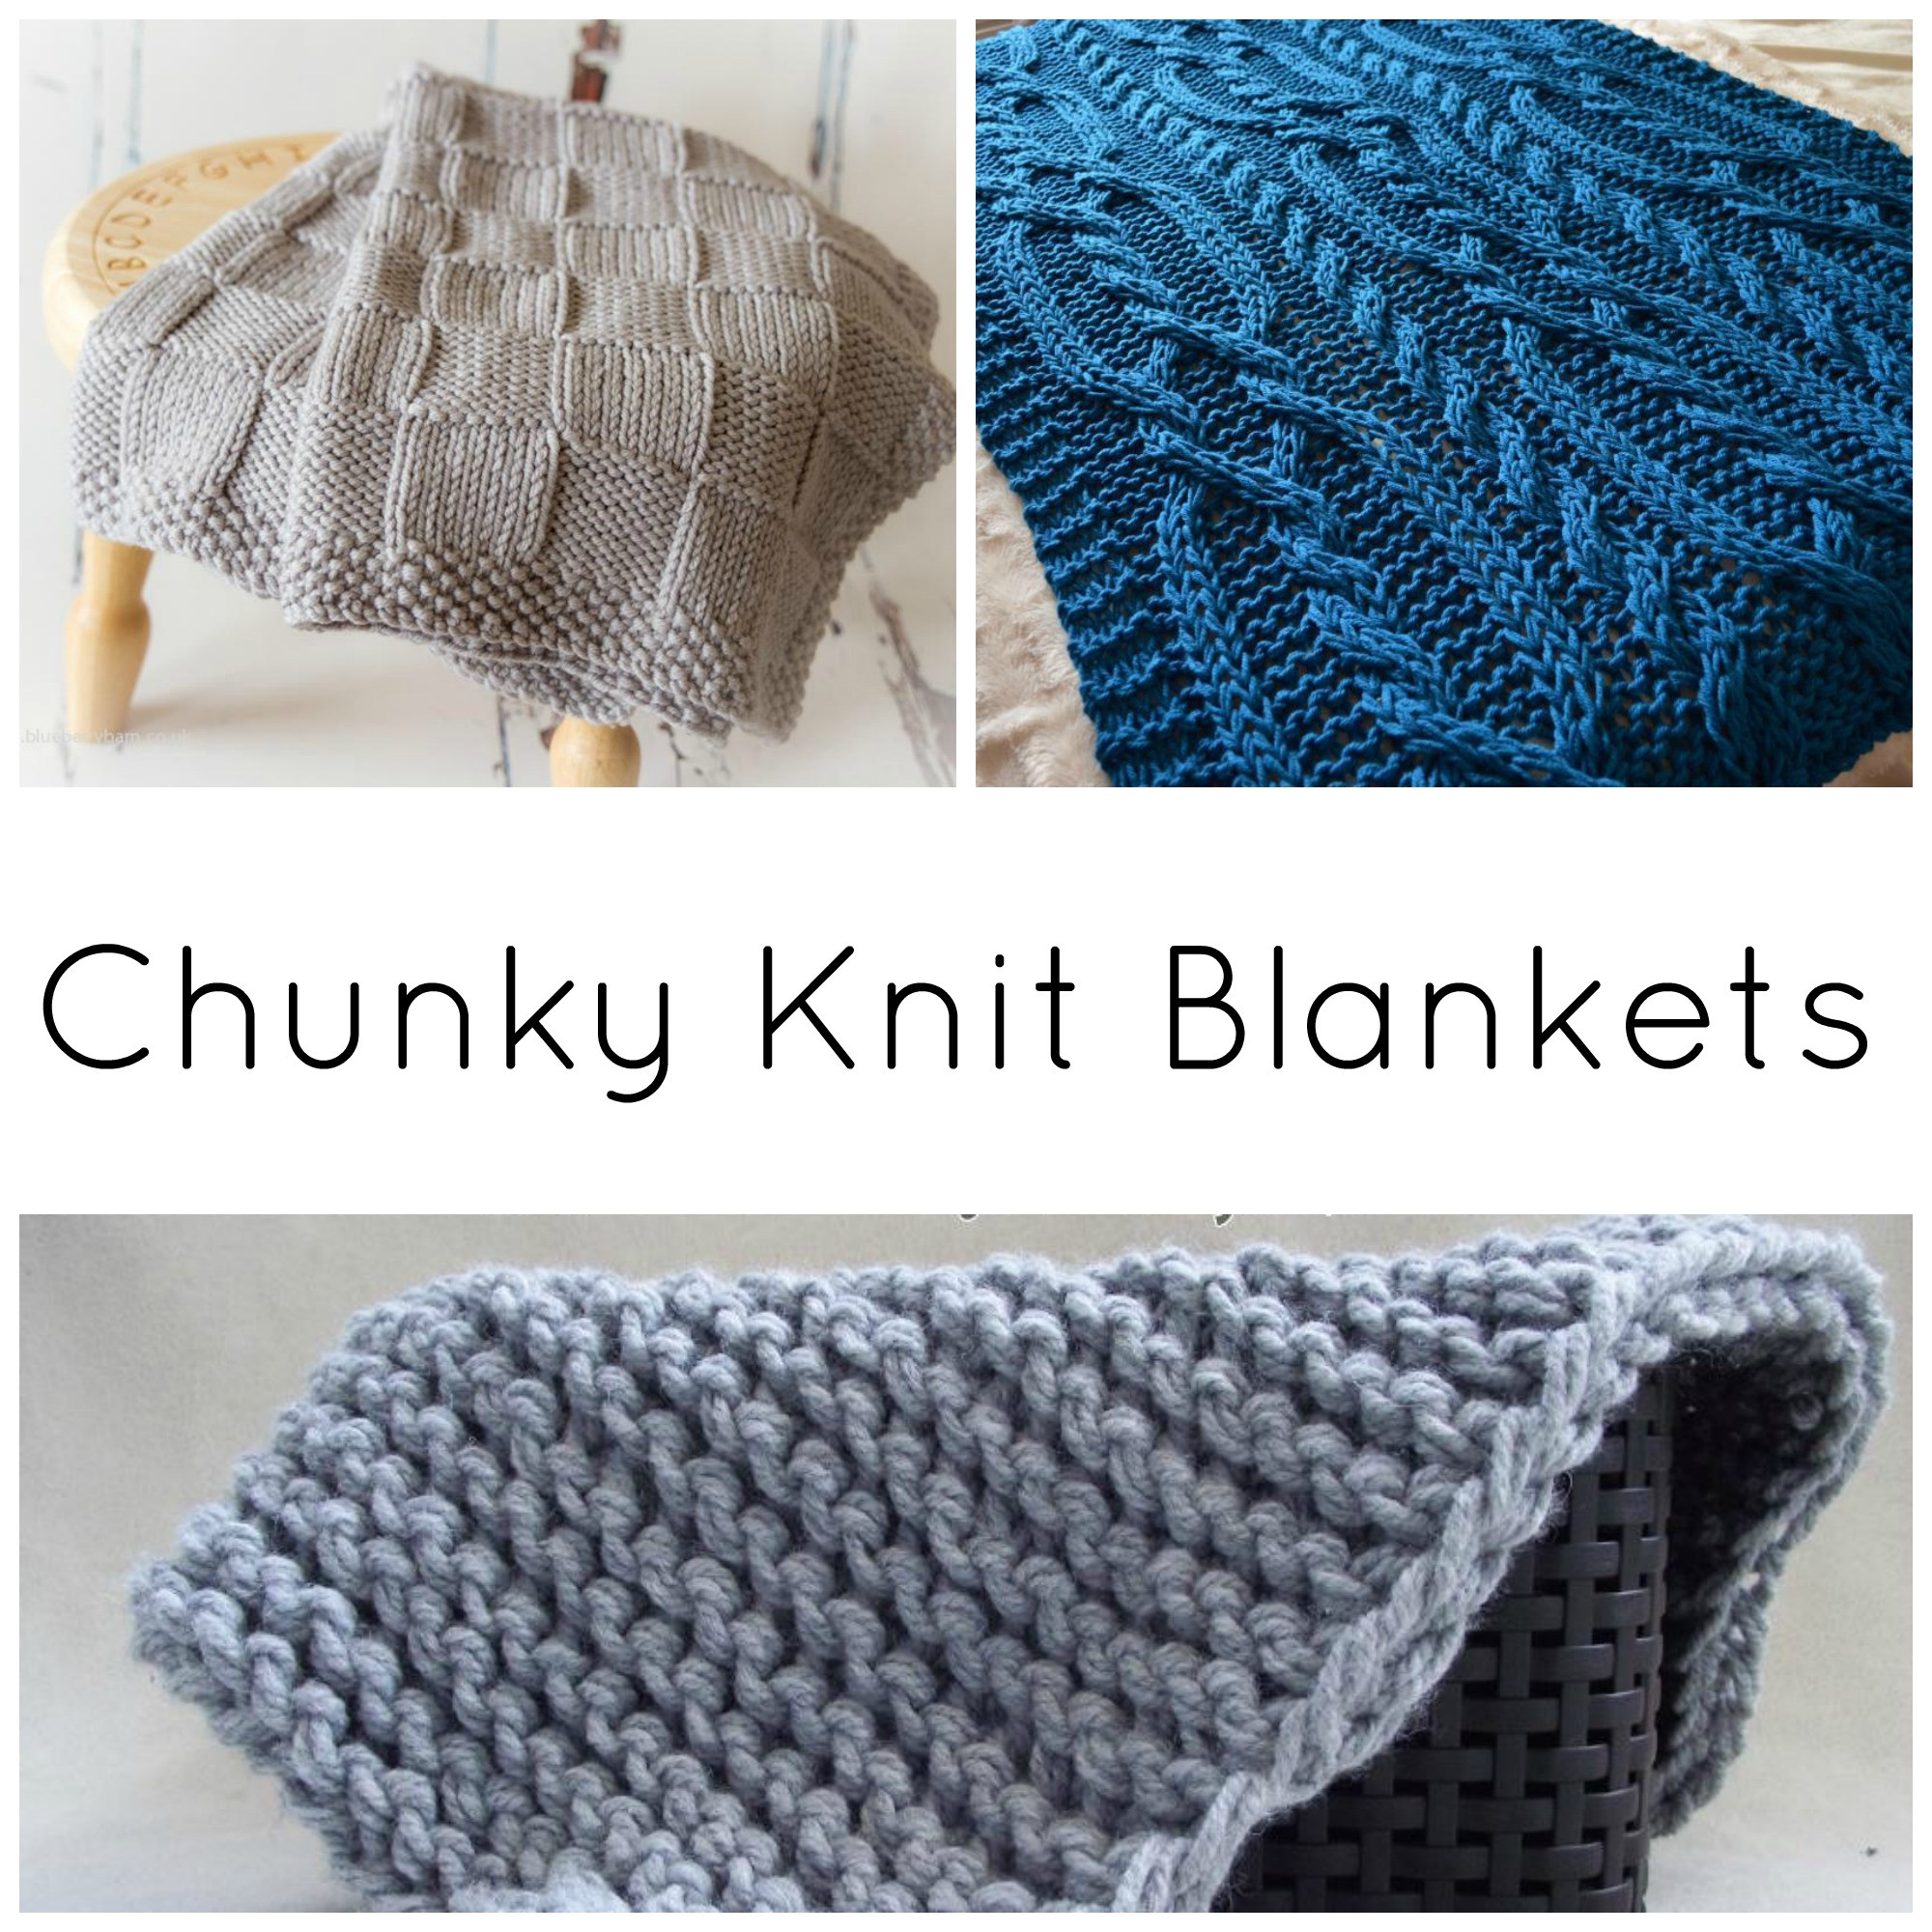 Thick Knit Blanket Elegant 10 Quick & Cozy Chunky Knit Blanket Patterns On Craftsy Of Wonderful 47 Models Thick Knit Blanket